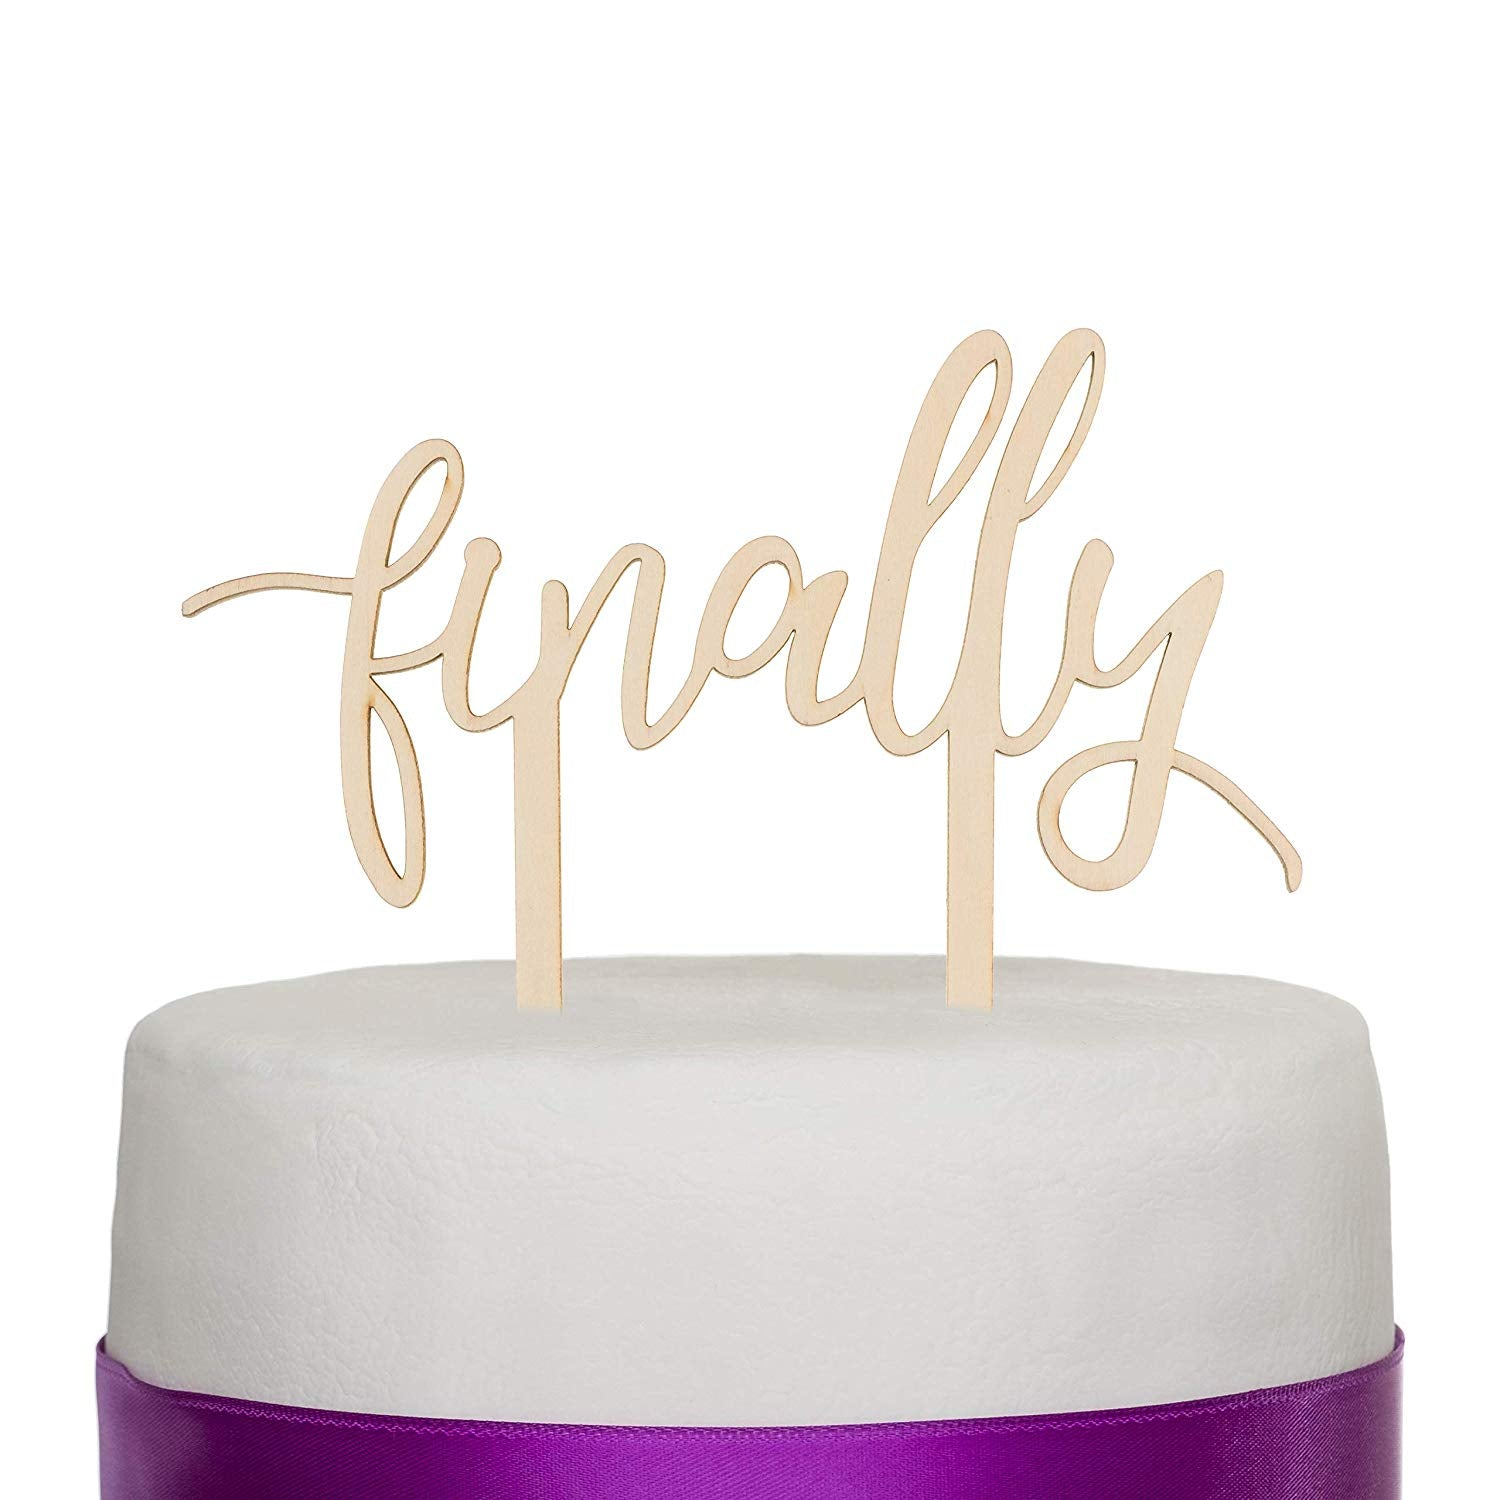 Finally Wooden Cake Topper - Cursive